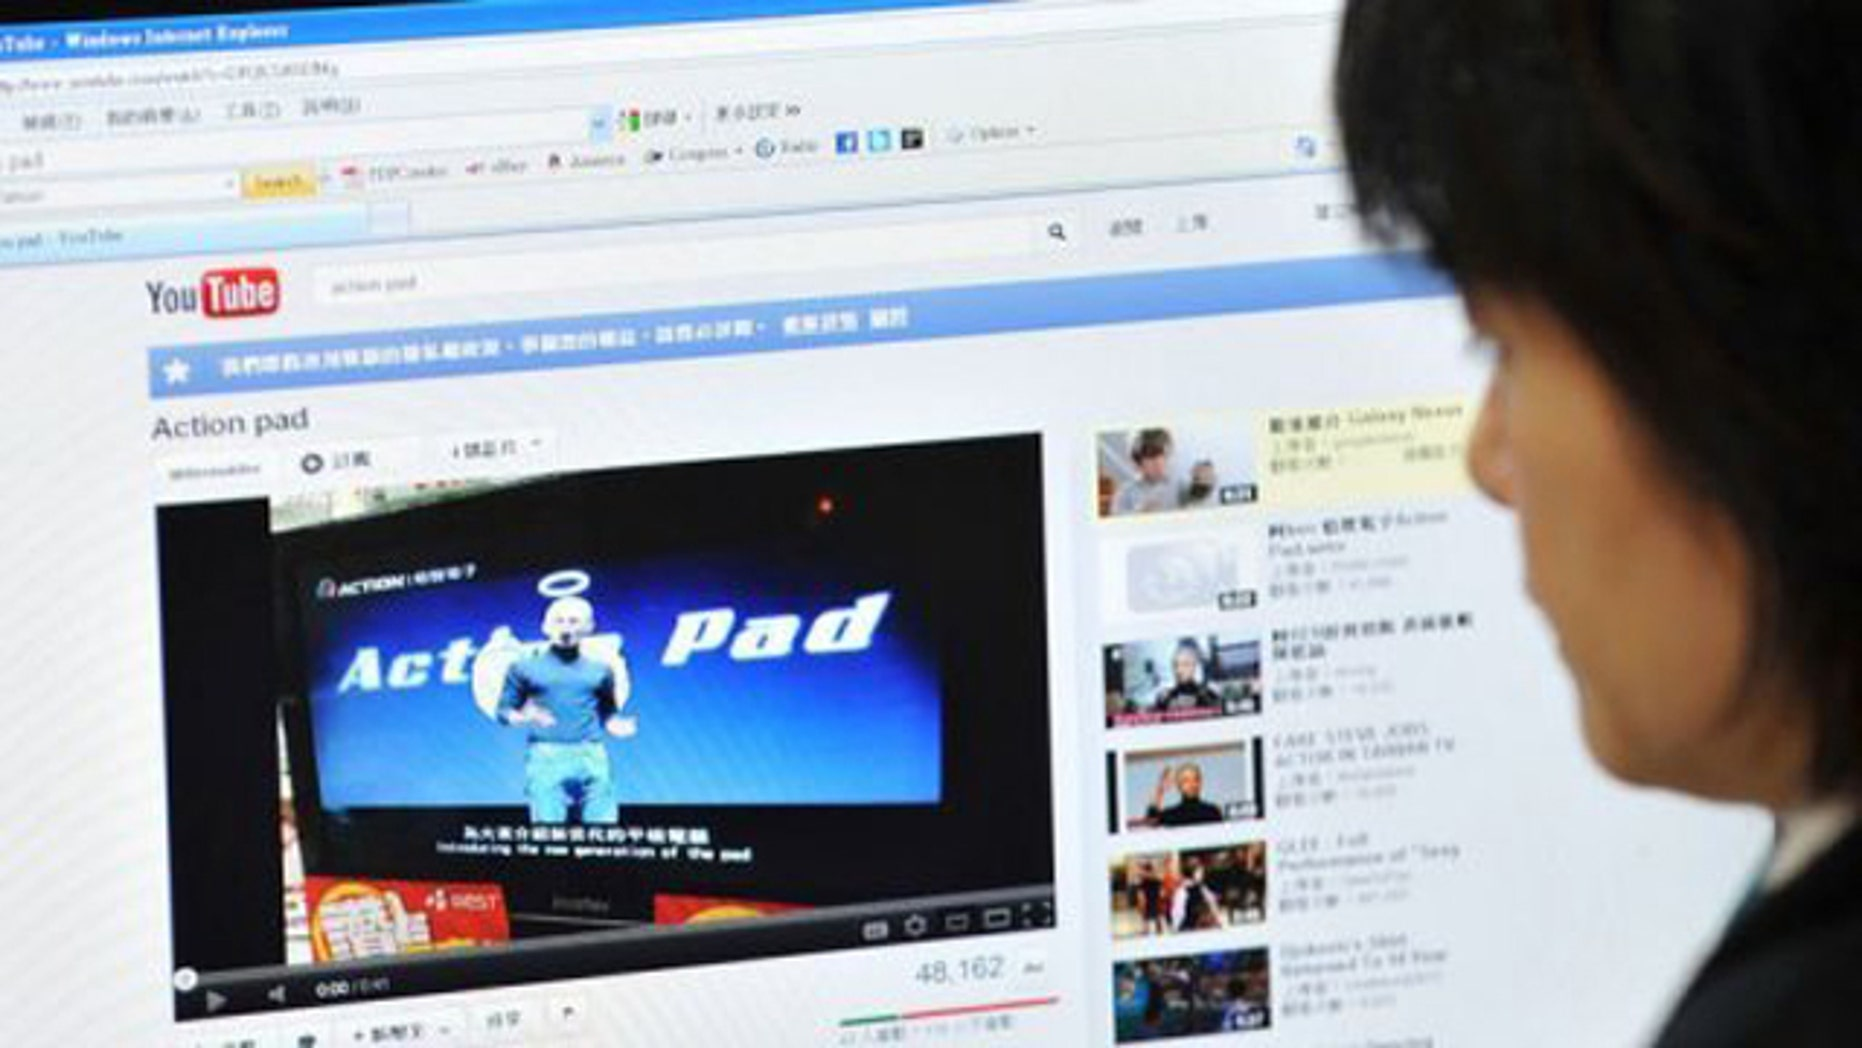 A woman looks at an Internet website in Taipei showing Taiwanese comedian A-Ken dressed up as Apple's late founder.